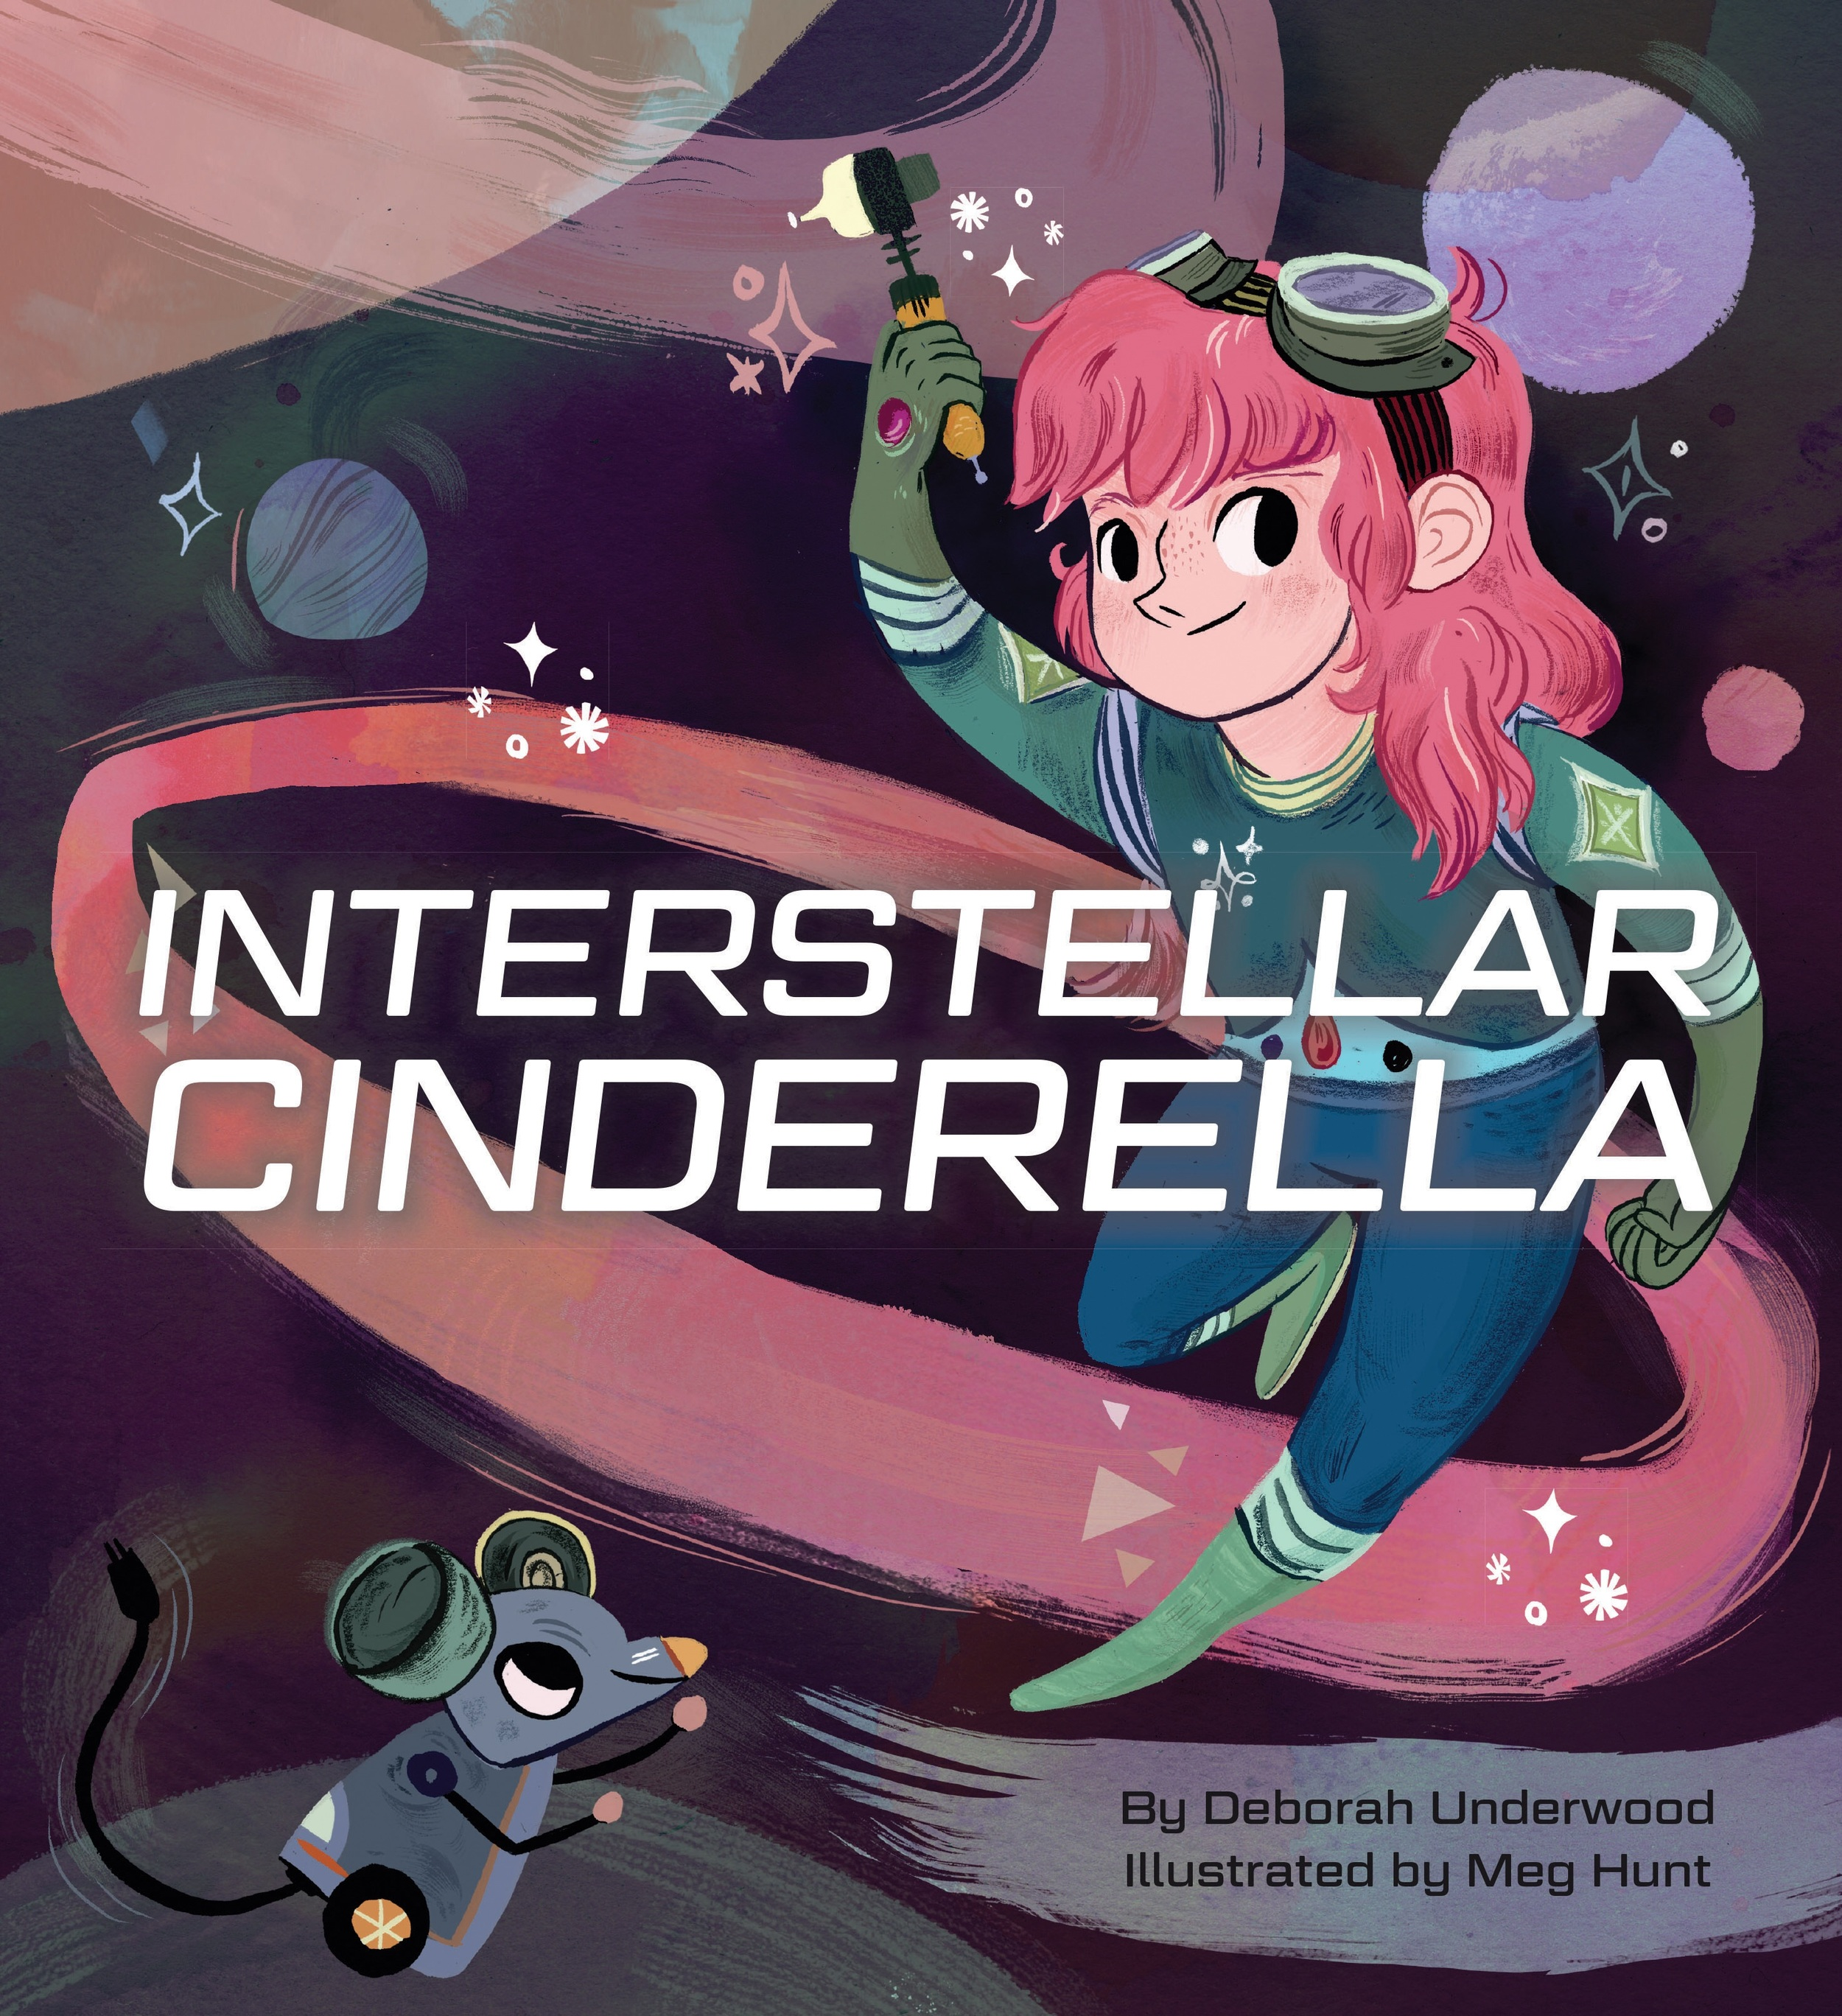 Interstellar Cinderella - Beautiful illustrations and charming rhyme with an amazing ending.